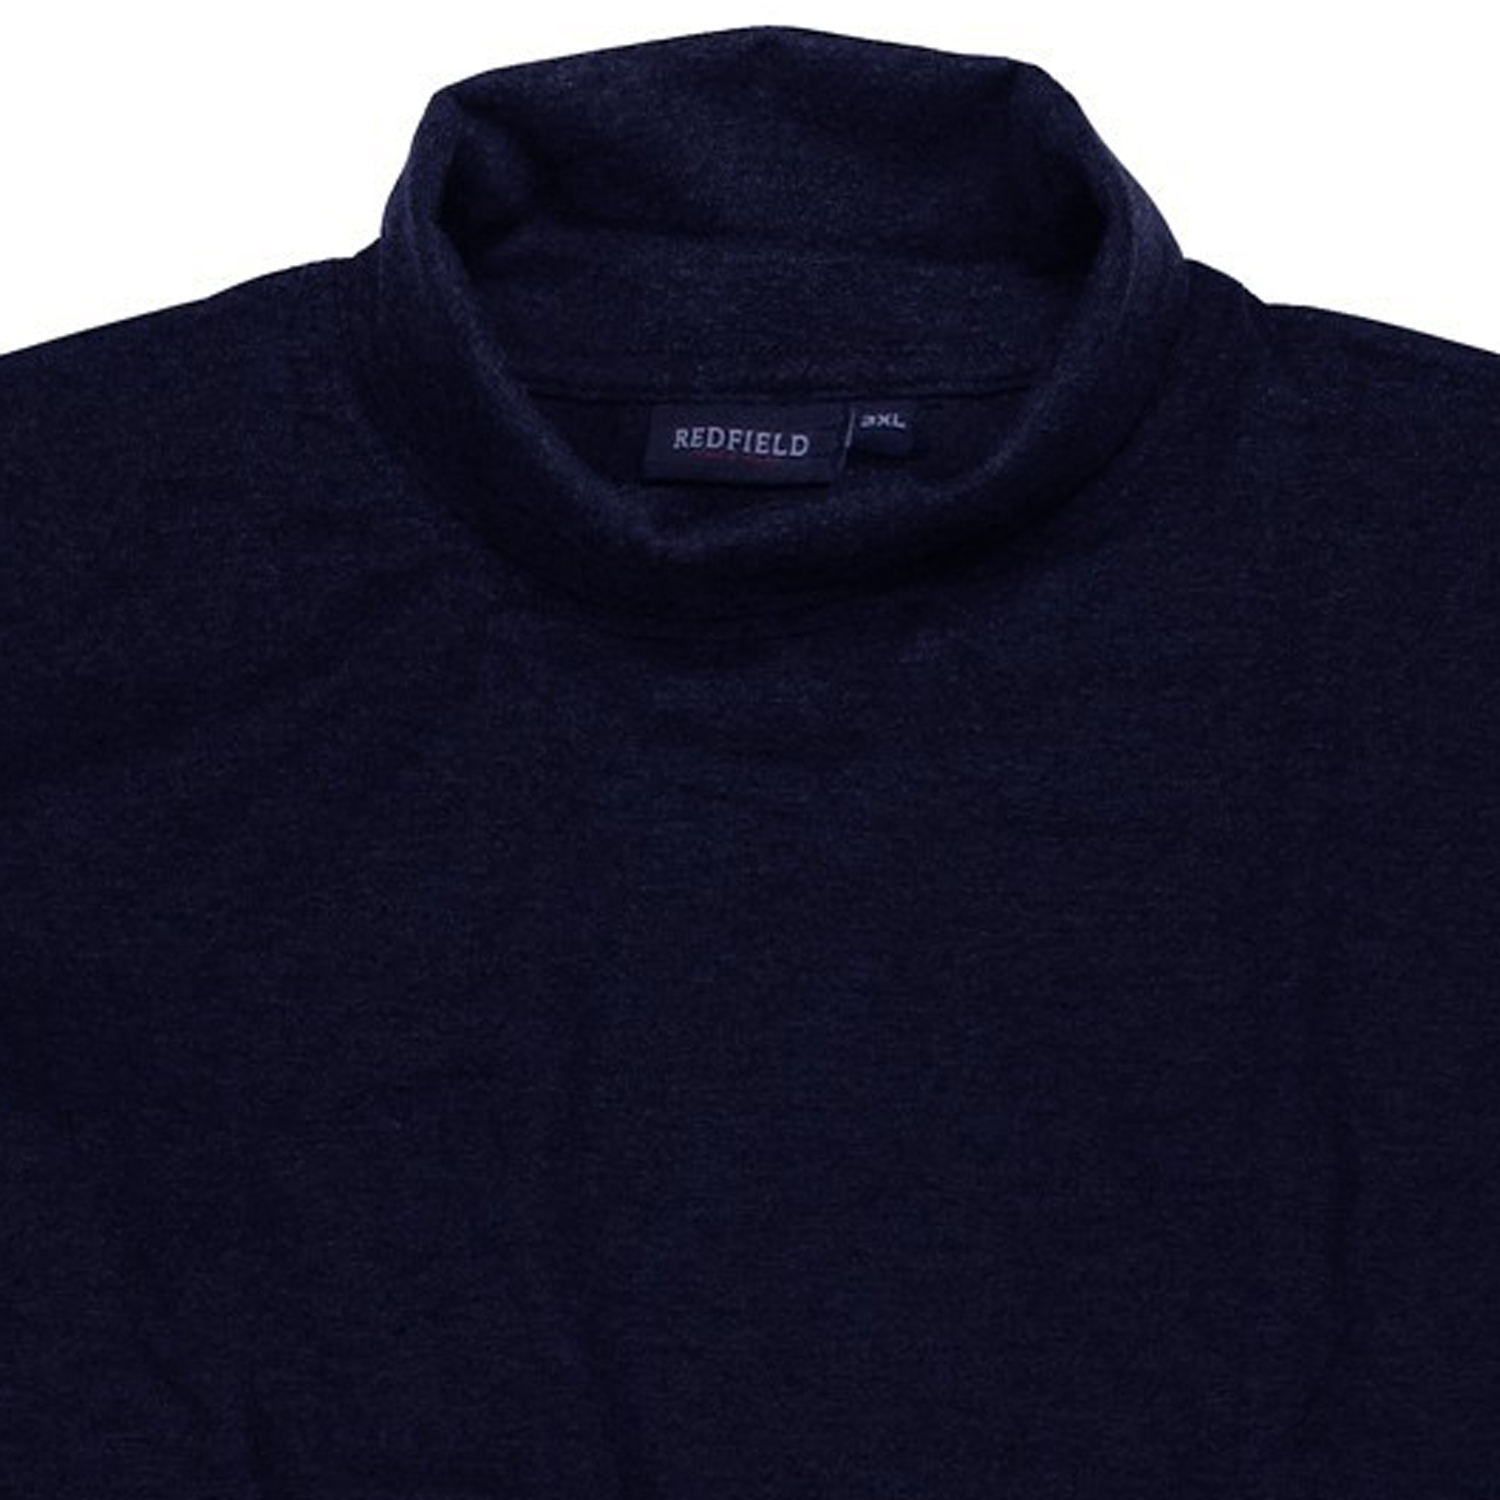 Detail Image to Dark blue polo-neck jersey by Redfield in oversizes up to 6XL